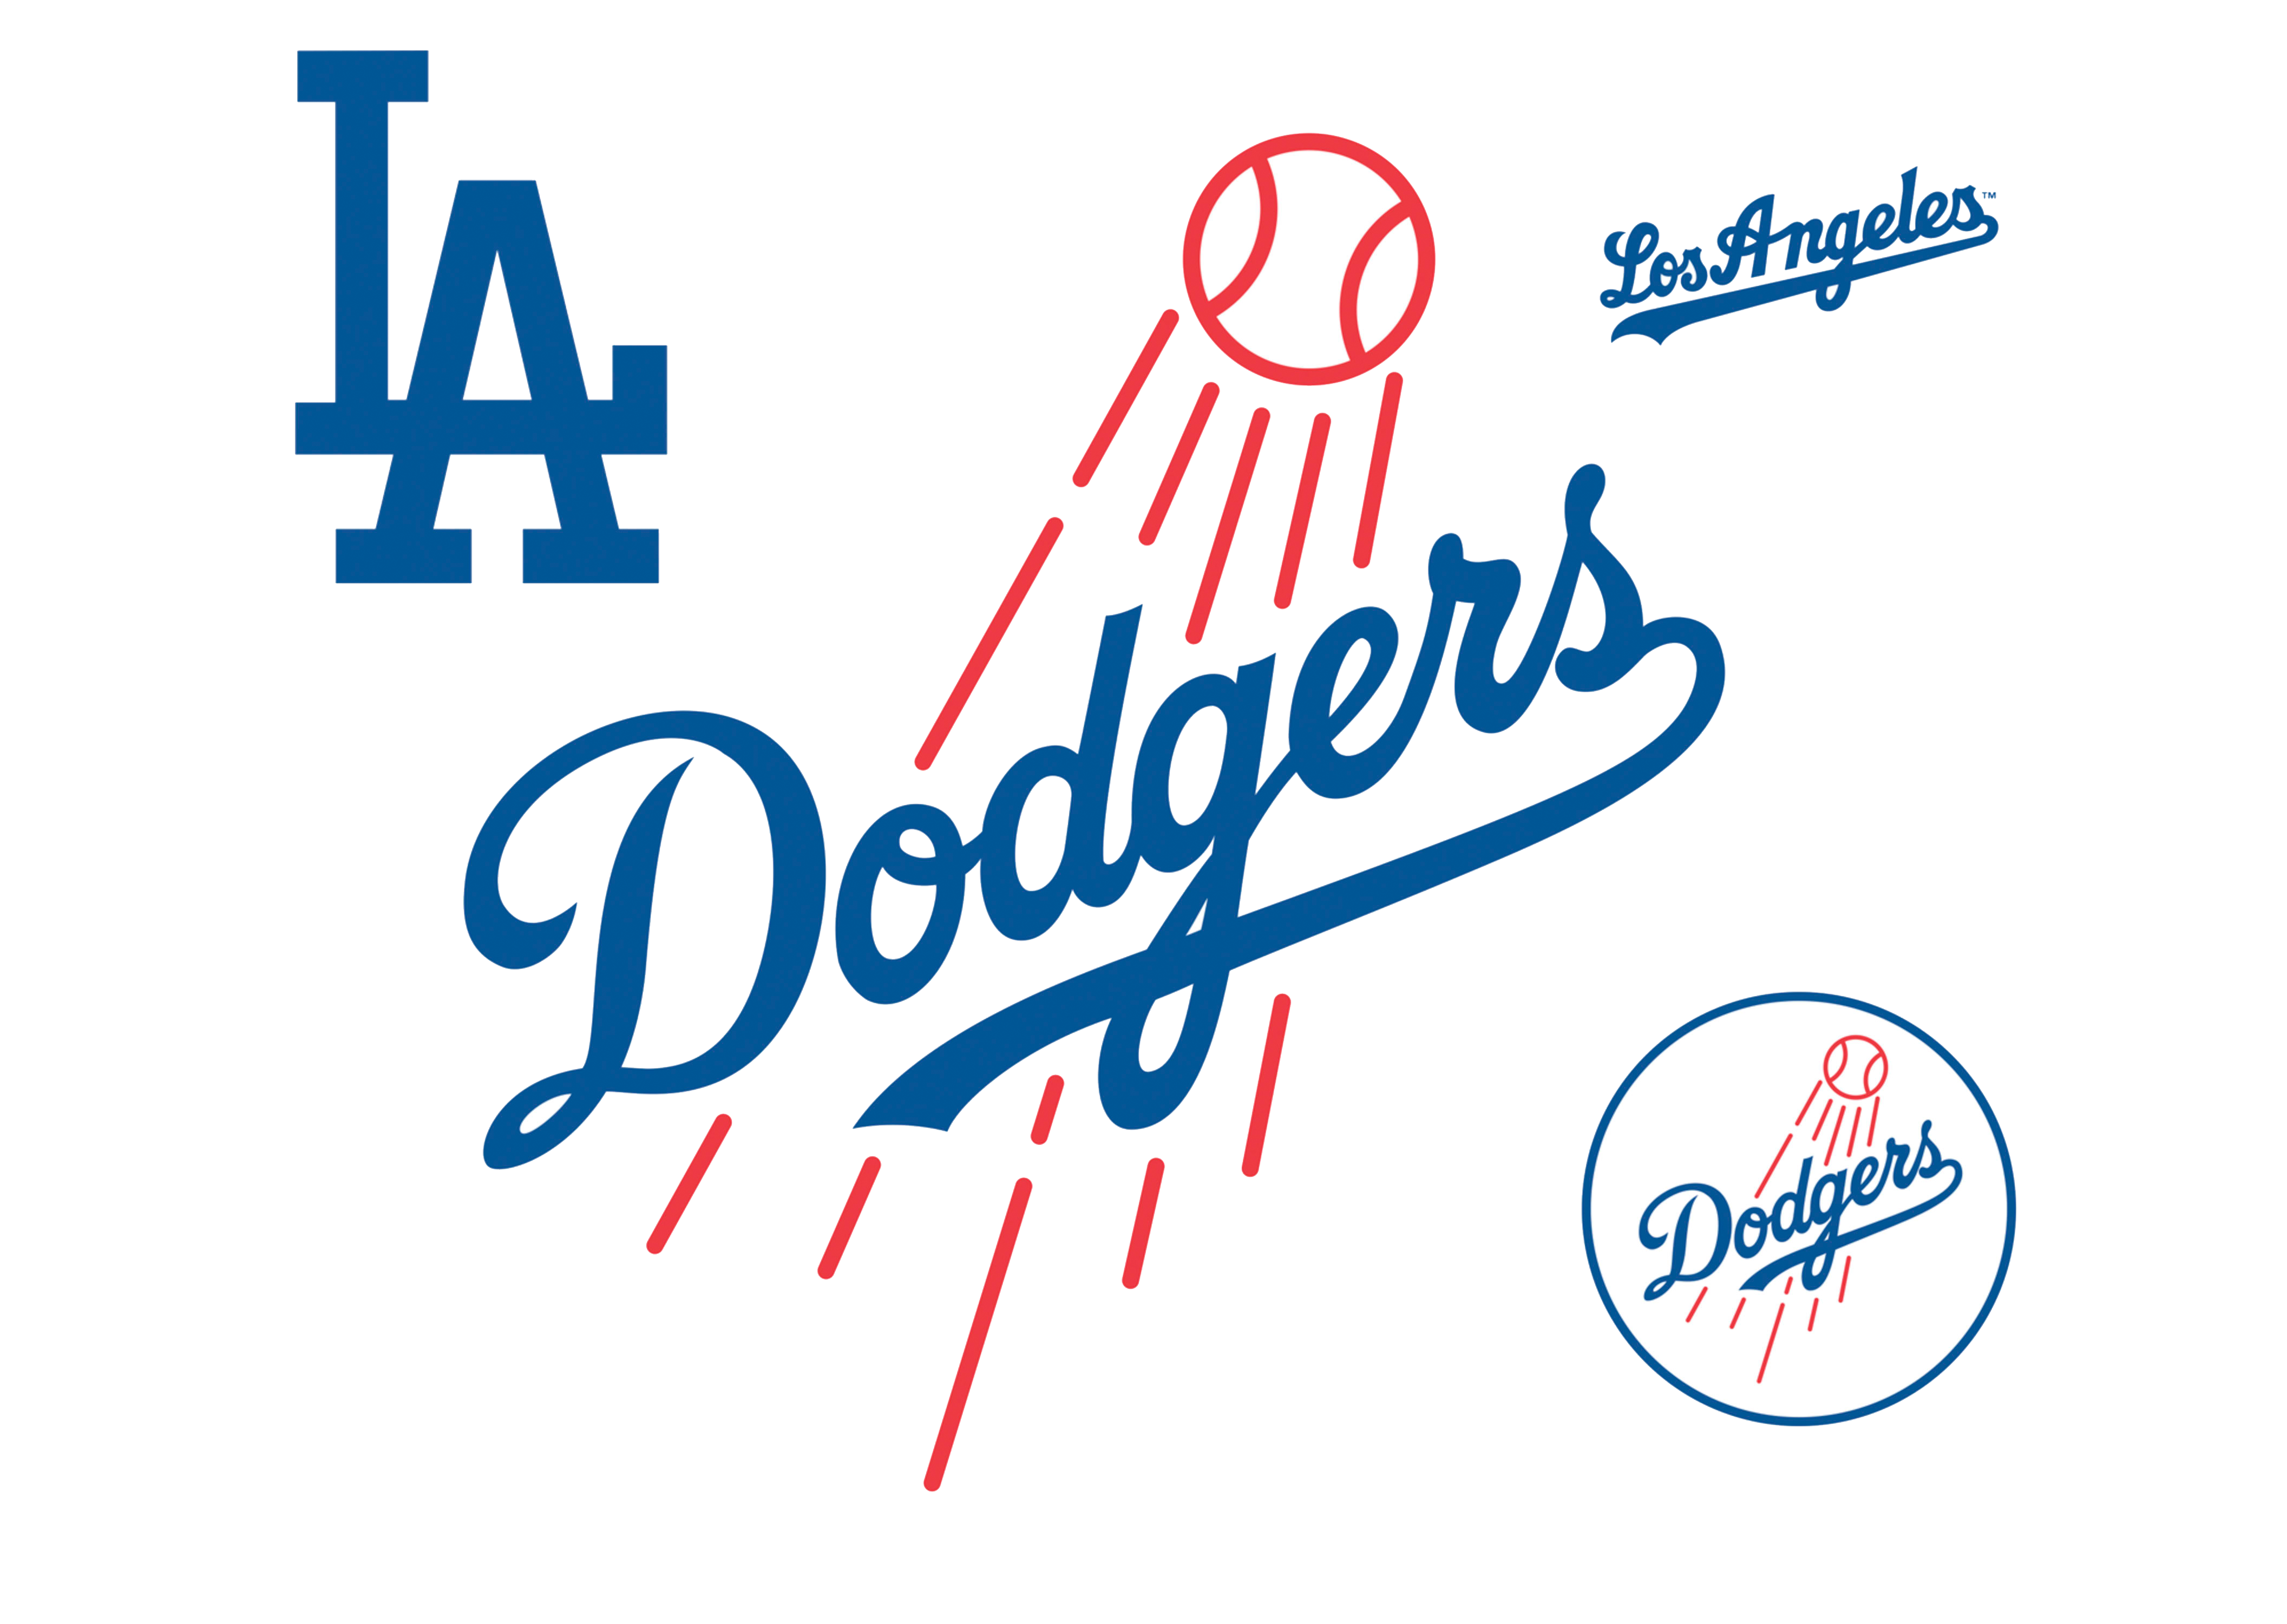 Baseball clipart free la dodgers png freeuse library All Dodgers Logos PNG Image - PurePNG | Free transparent CC0 PNG ... png freeuse library